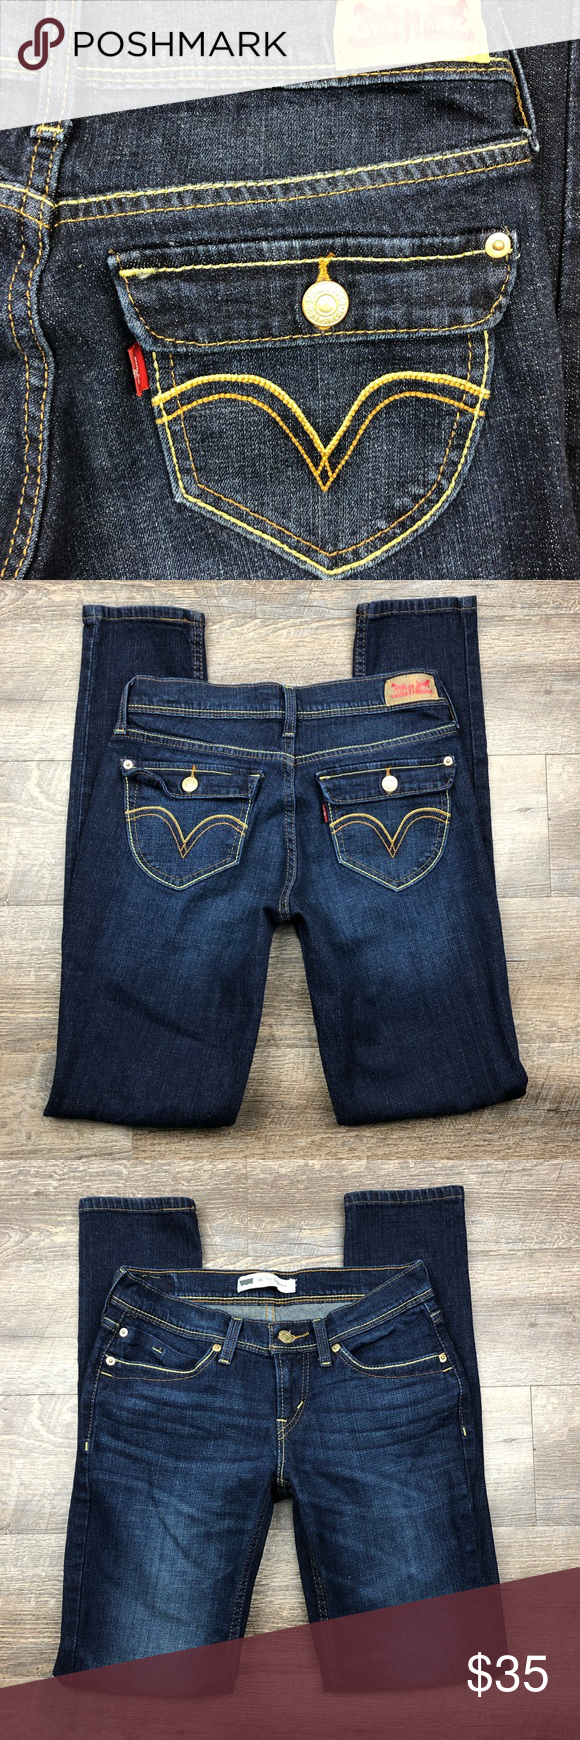 Levi s 524 Too Superlow Skinny Jeans Size 5M 27x31 Levi s Womens 524 Too  Superlow Skinny Dark Denim Stretch Jeans Size 5M 27x31 Tagged Size  5M  Measured ... 763c8e20dd